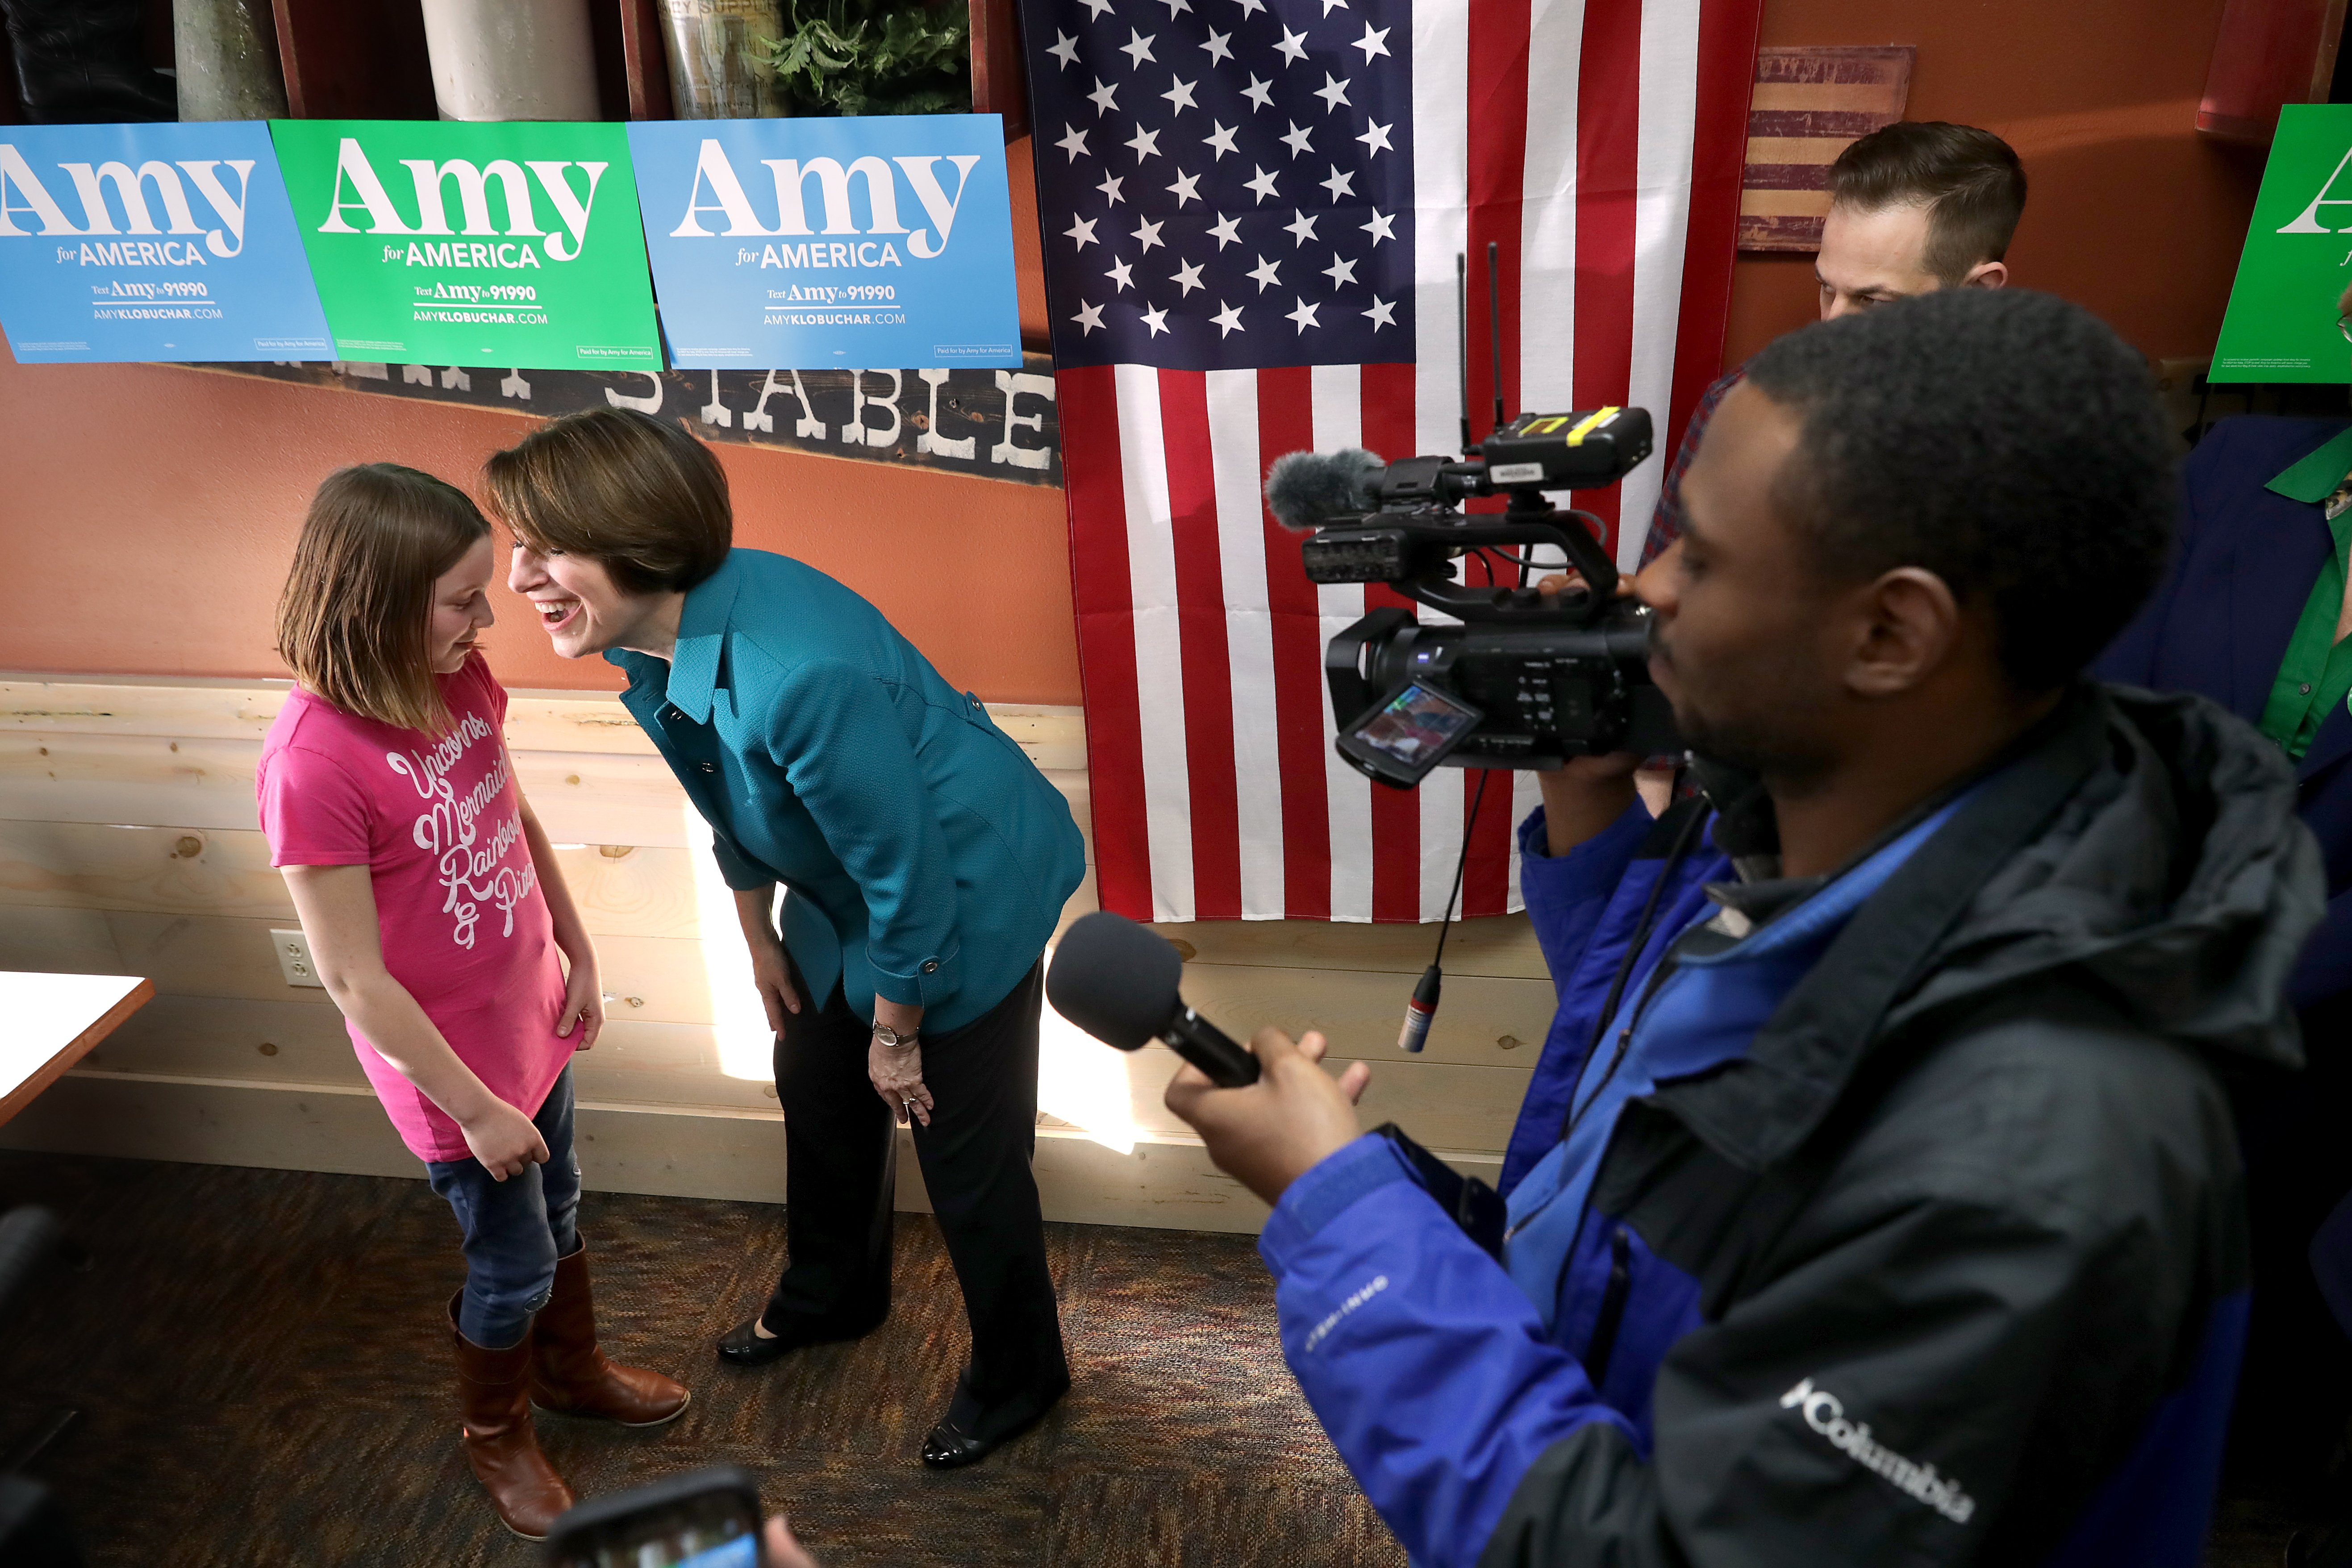 U.S. Sen. Amy Klobuchar asks a girl about her shirt that reads, 'Unicorns, Mermaids, Rainbows & Pizza' while campaigning for the Democratic presidential nomination at the Pizza Ranch restaurant March 16, 2019 in Independence, Iowa. (Photo by Chip Somodevilla/Getty Images)